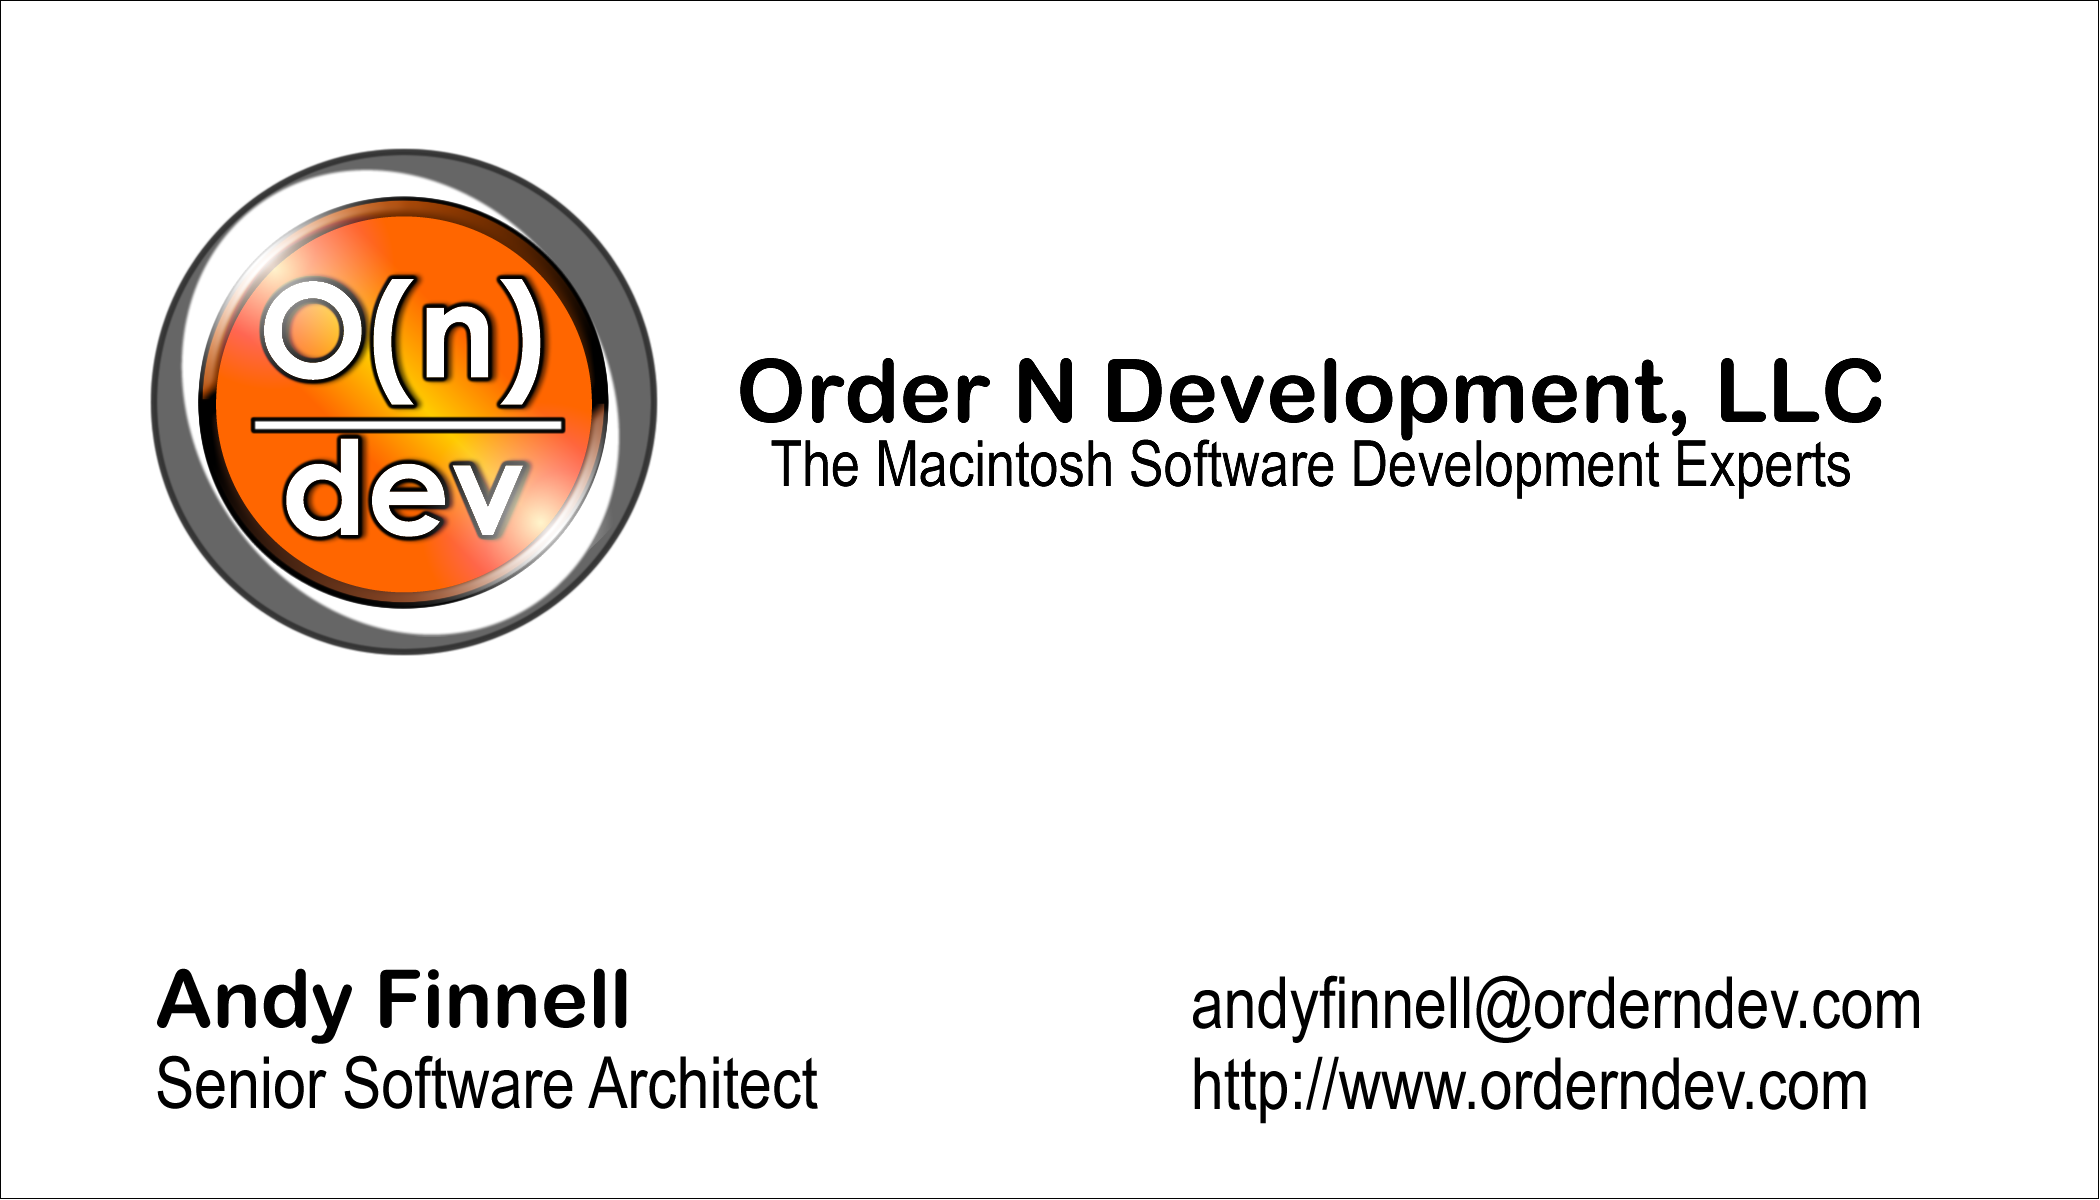 Logo designs business cards and when engineers go bad safe from business card style b colourmoves